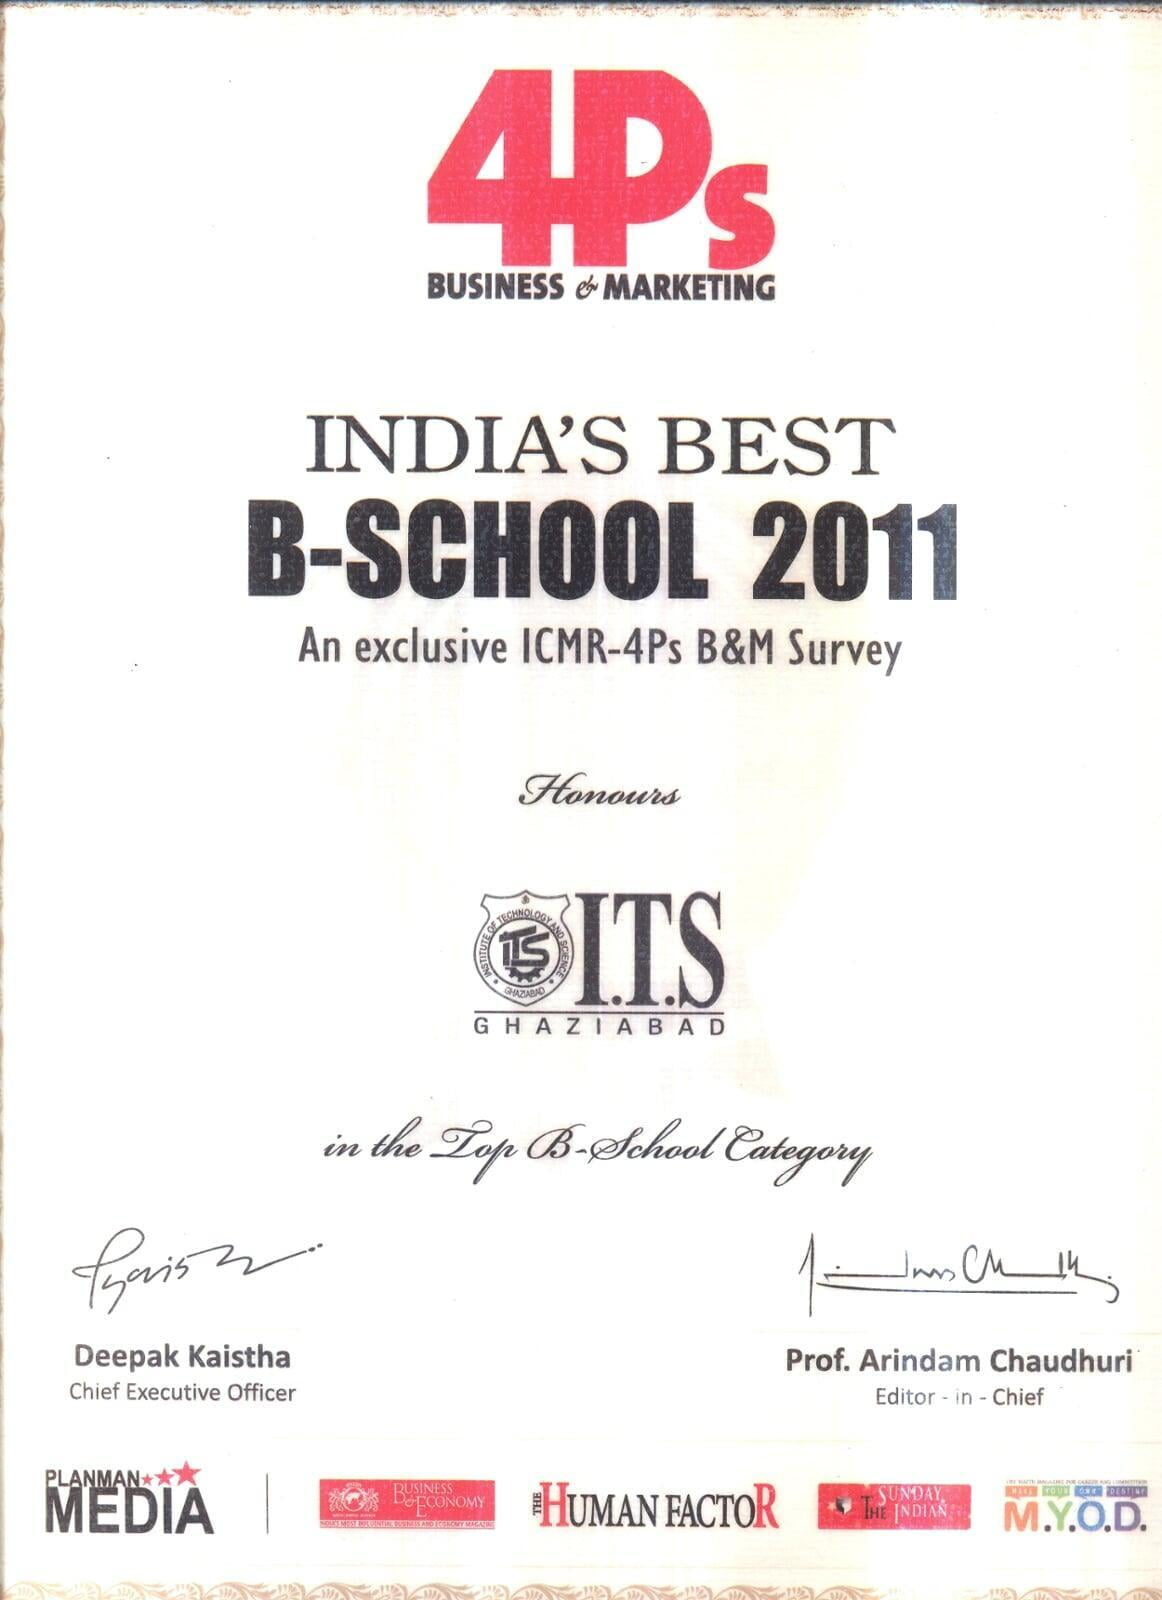 India's Best B - School For The Year 2011